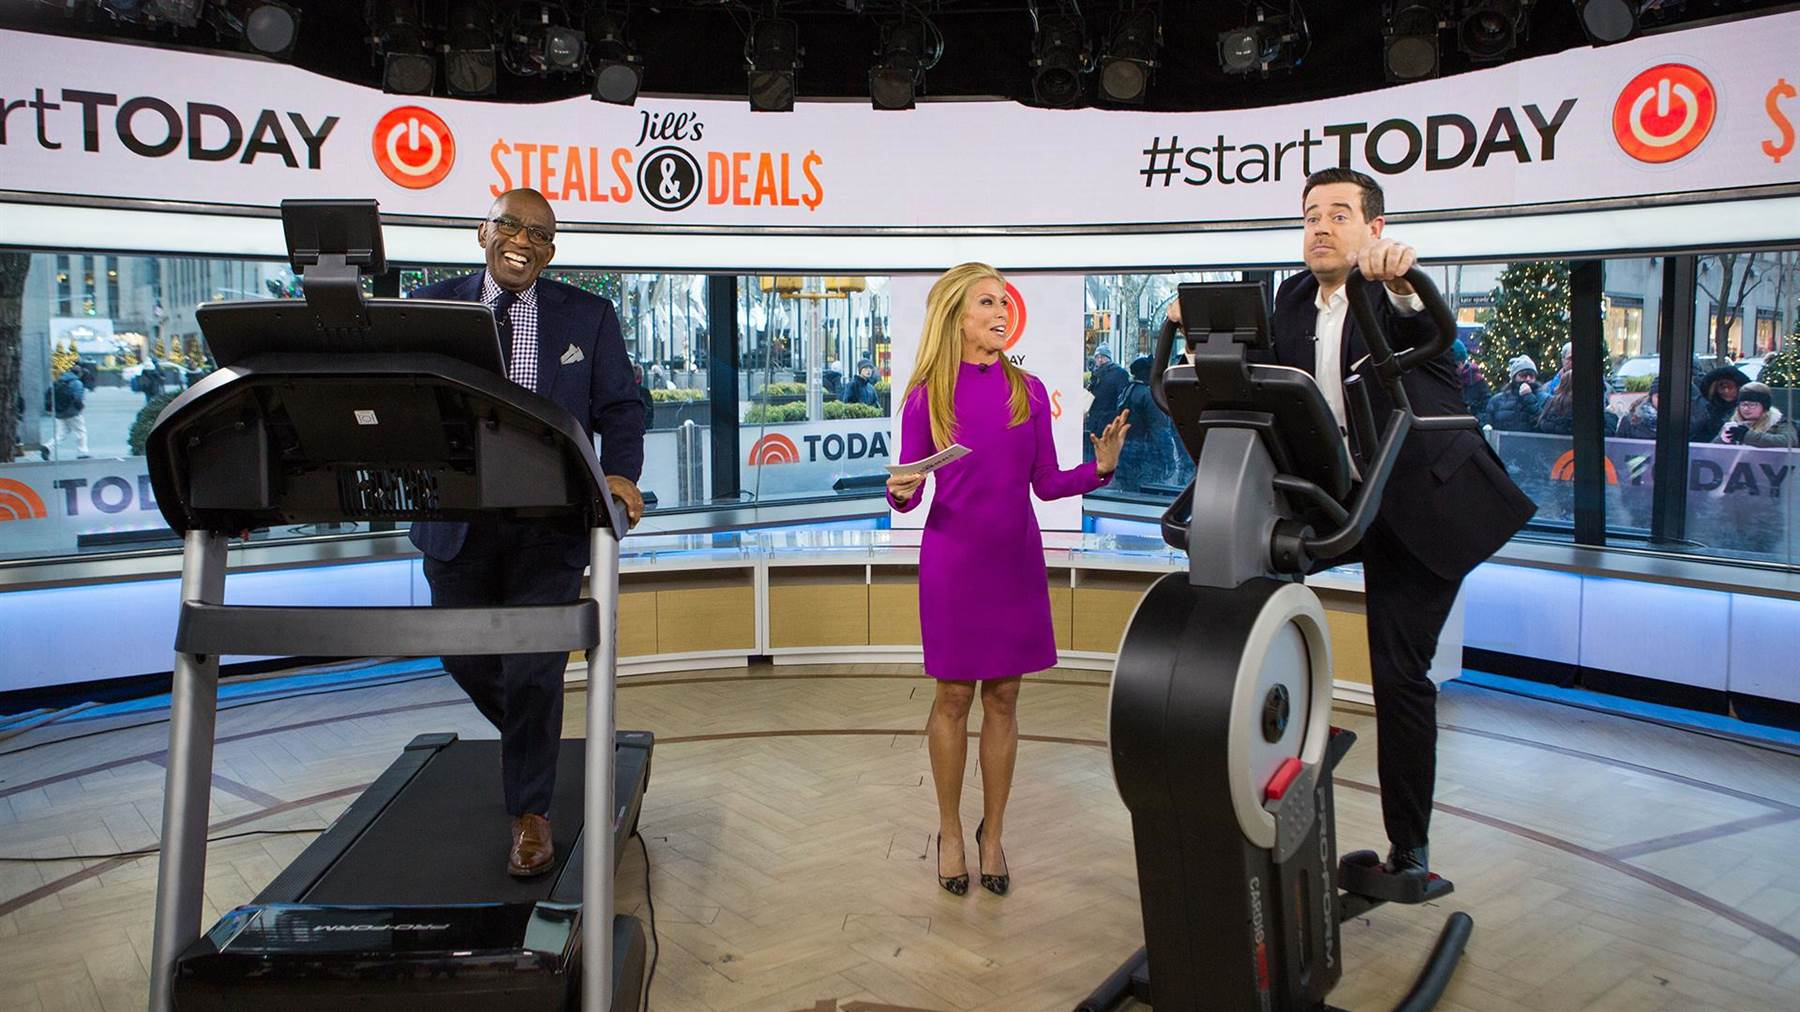 AL ROKER, JILL MARTIN & CARLSON DALY  HAVING FUN JILL'S STEALS AND DEALS ON THE TODAY SHOW FEATURING THE SMART PRO 2000 TREADMILL & THE  HIIT TRAINER  PRO   FROM PROFORM